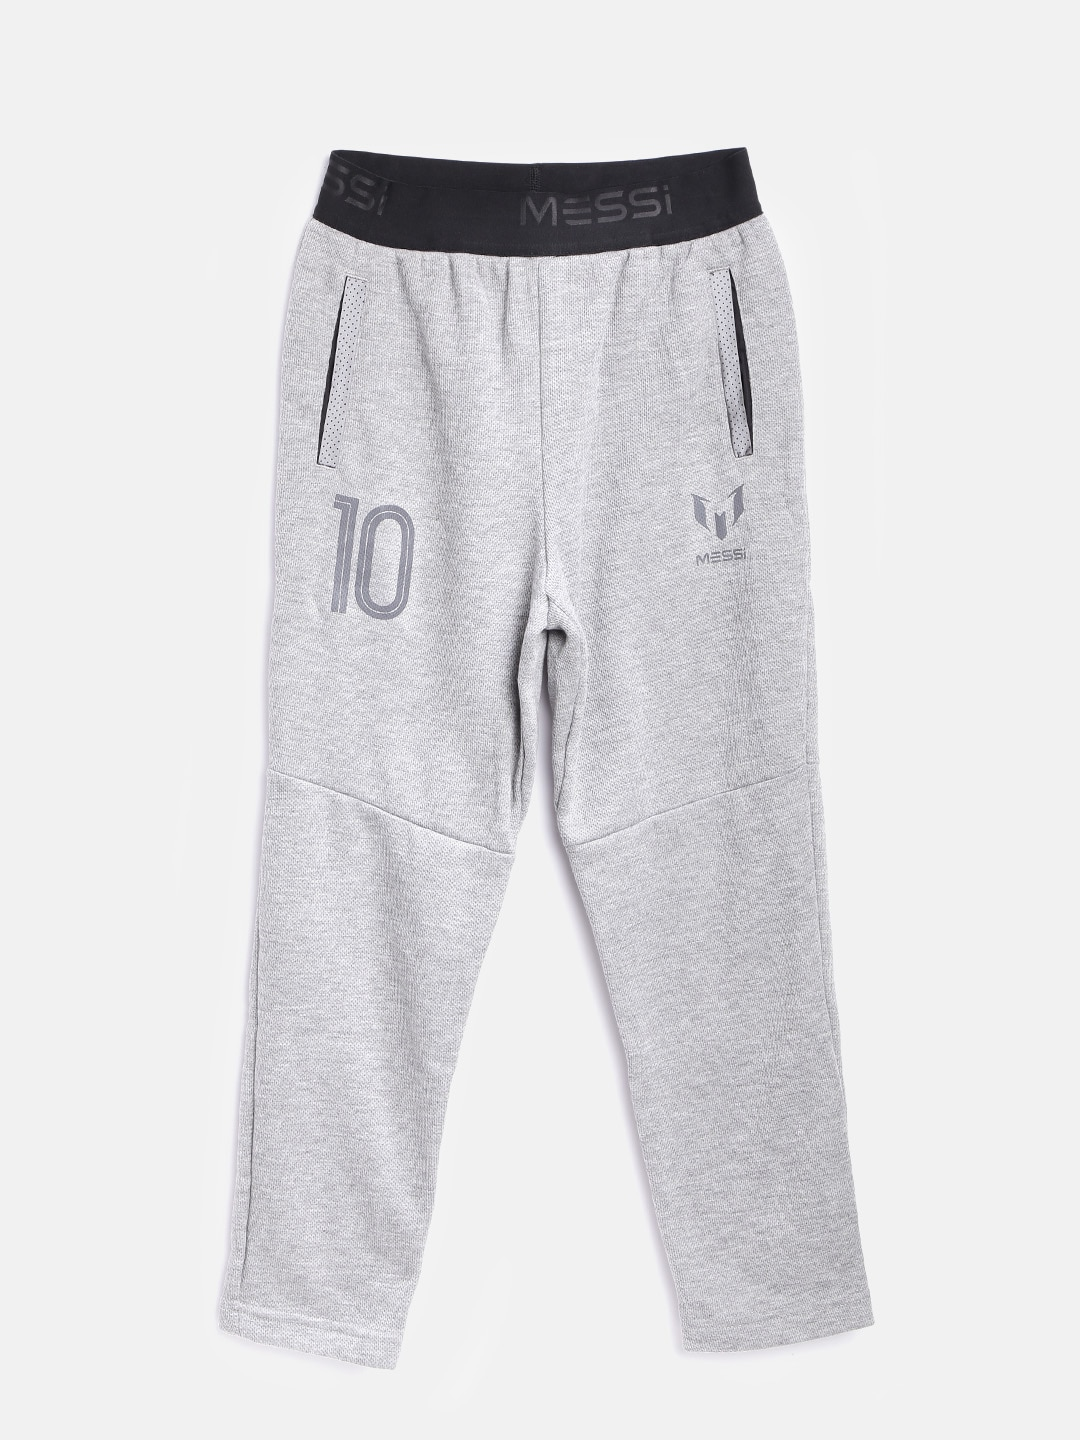 453e96e69769 Adidas Track Pants Pants Track Pantssuits 3 Tray - Buy Adidas Track Pants  Pants Track Pantssuits 3 Tray online in India